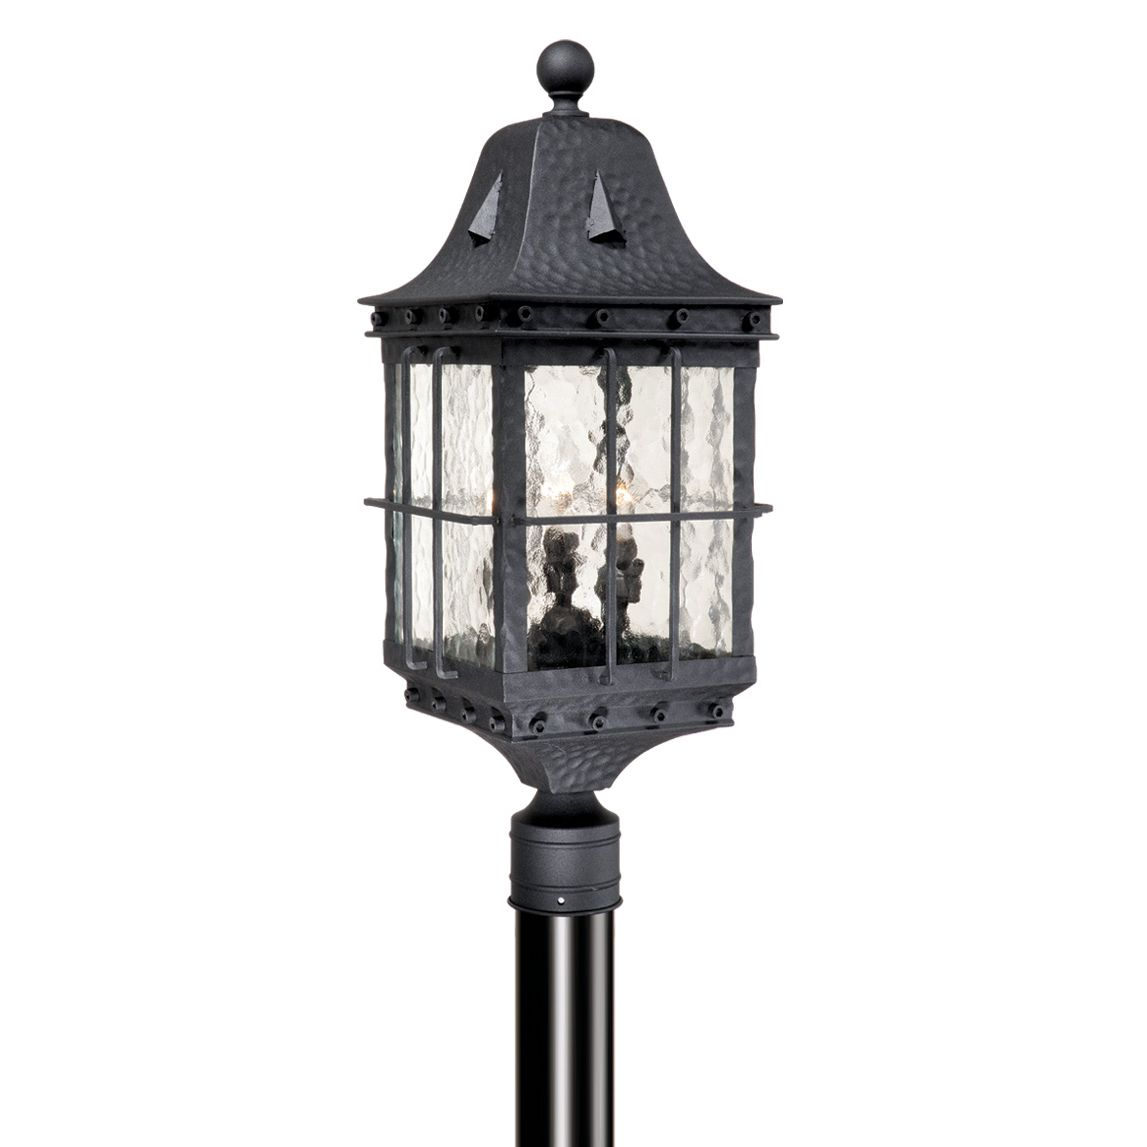 Savannah Outdoor Pole Light - Textured Black